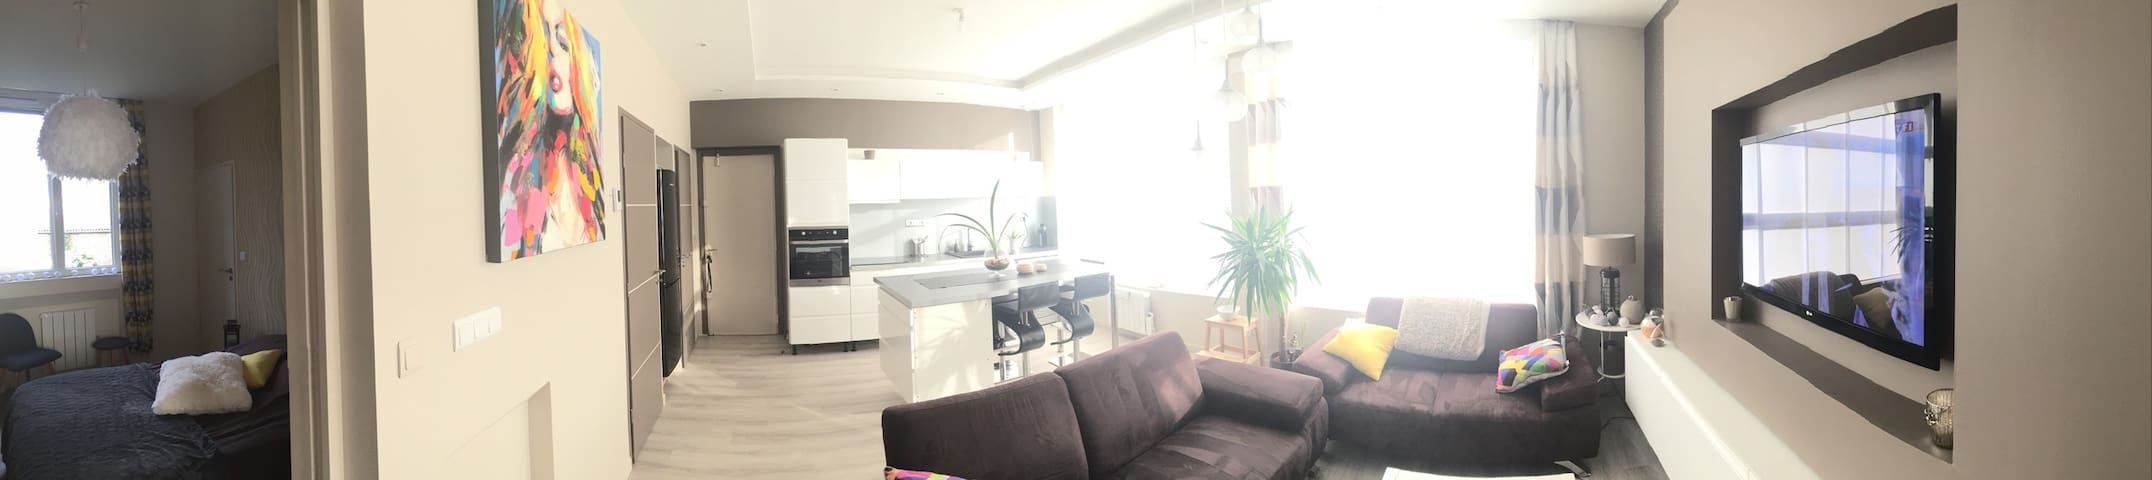 New and functional apartment - Arras - Wohnung